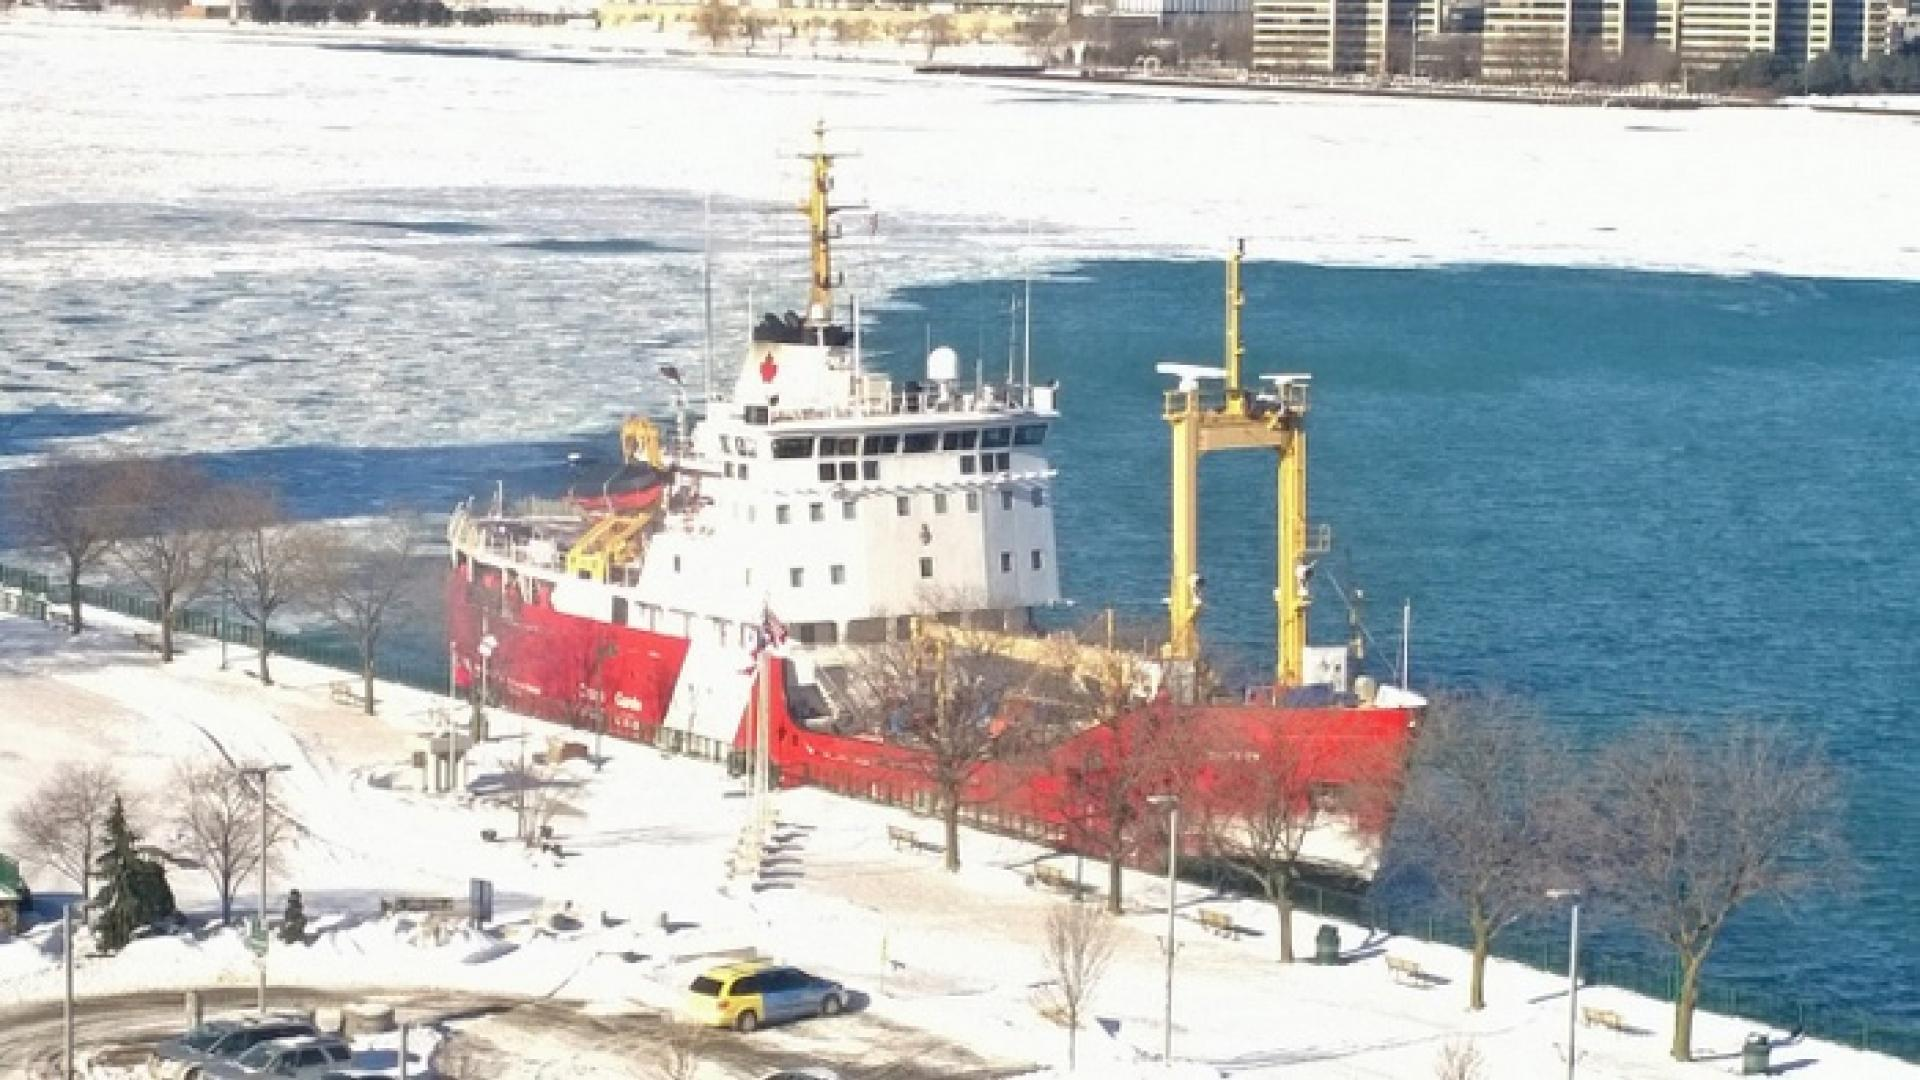 An icebreaker in the Detroit River.